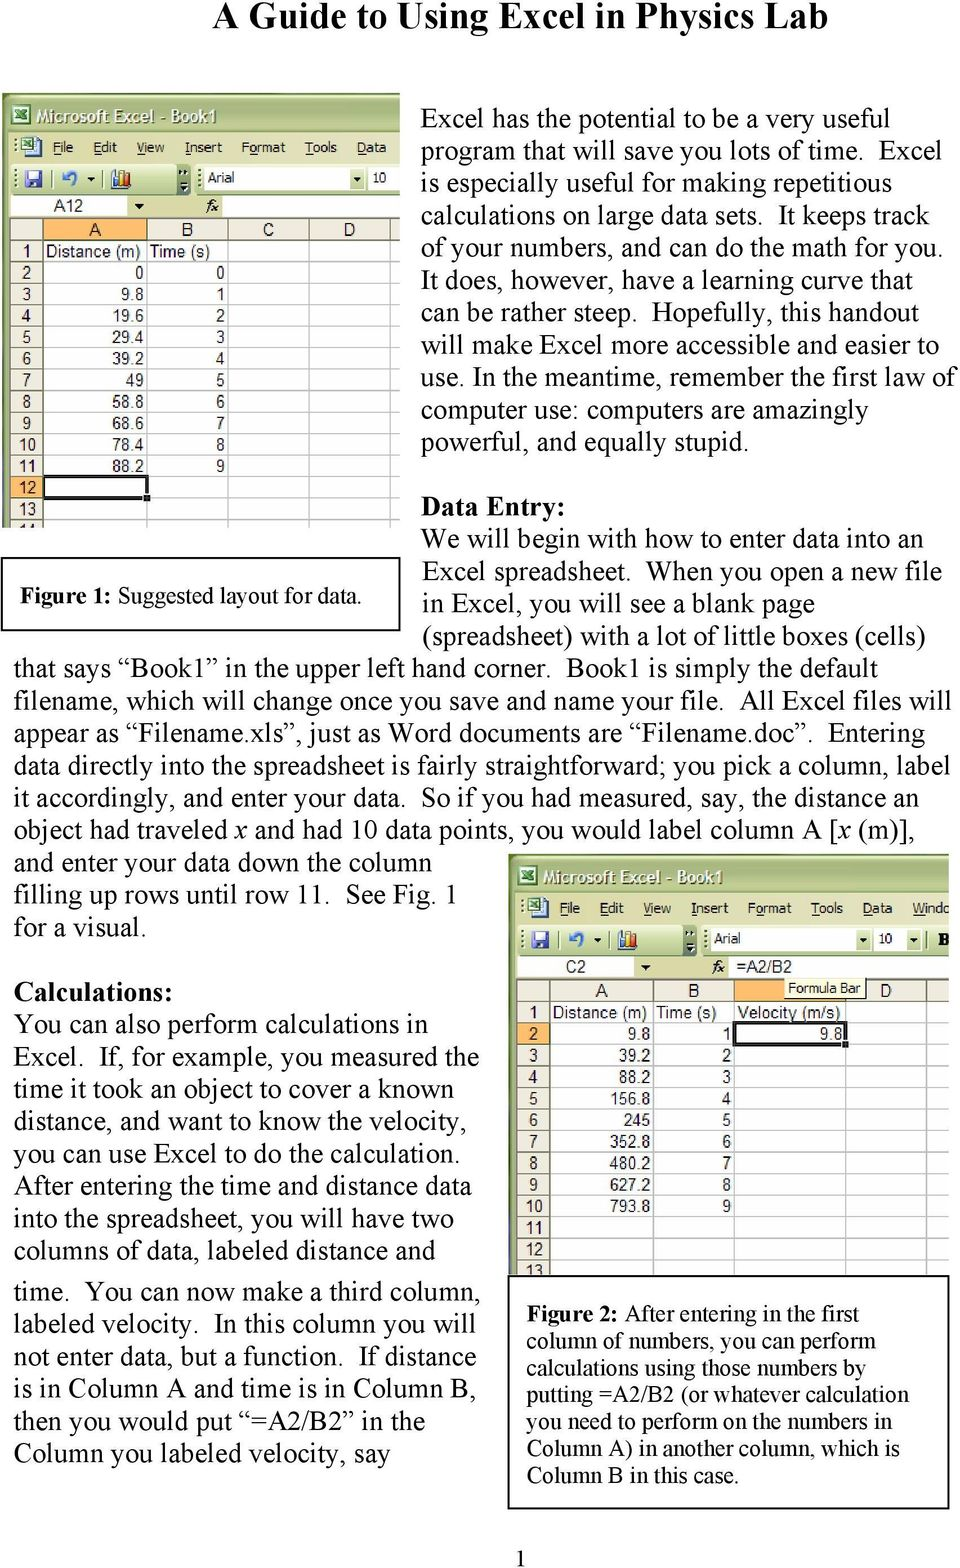 It does, however, have a learning curve that can be rather steep. Hopefully, this handout will make Excel more accessible and easier to use.